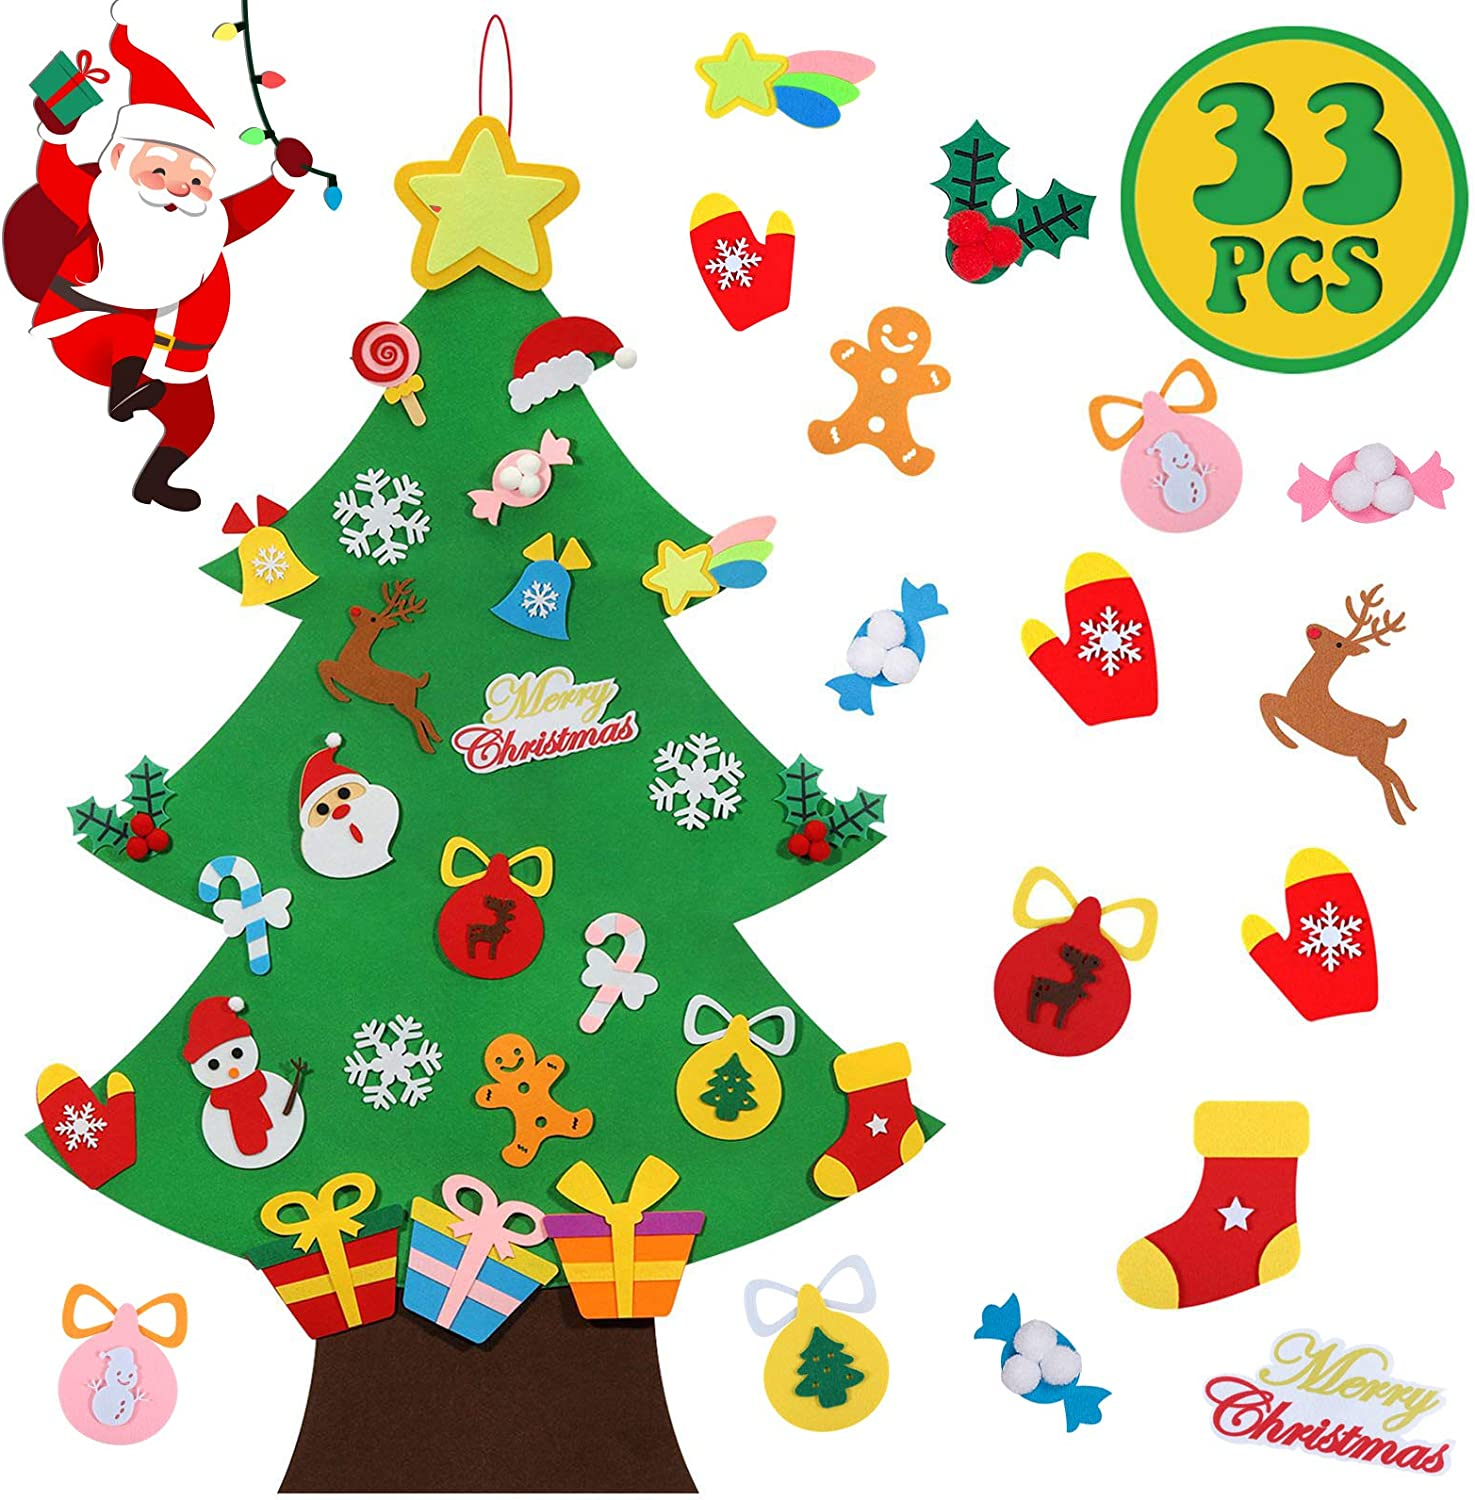 Lafefo Felt Christmas Tree - 3.6 FT 3D DIY Set for Kids with 33 Pieces of Ornament Decor, Wall Hanging Christmas Tree Decorations